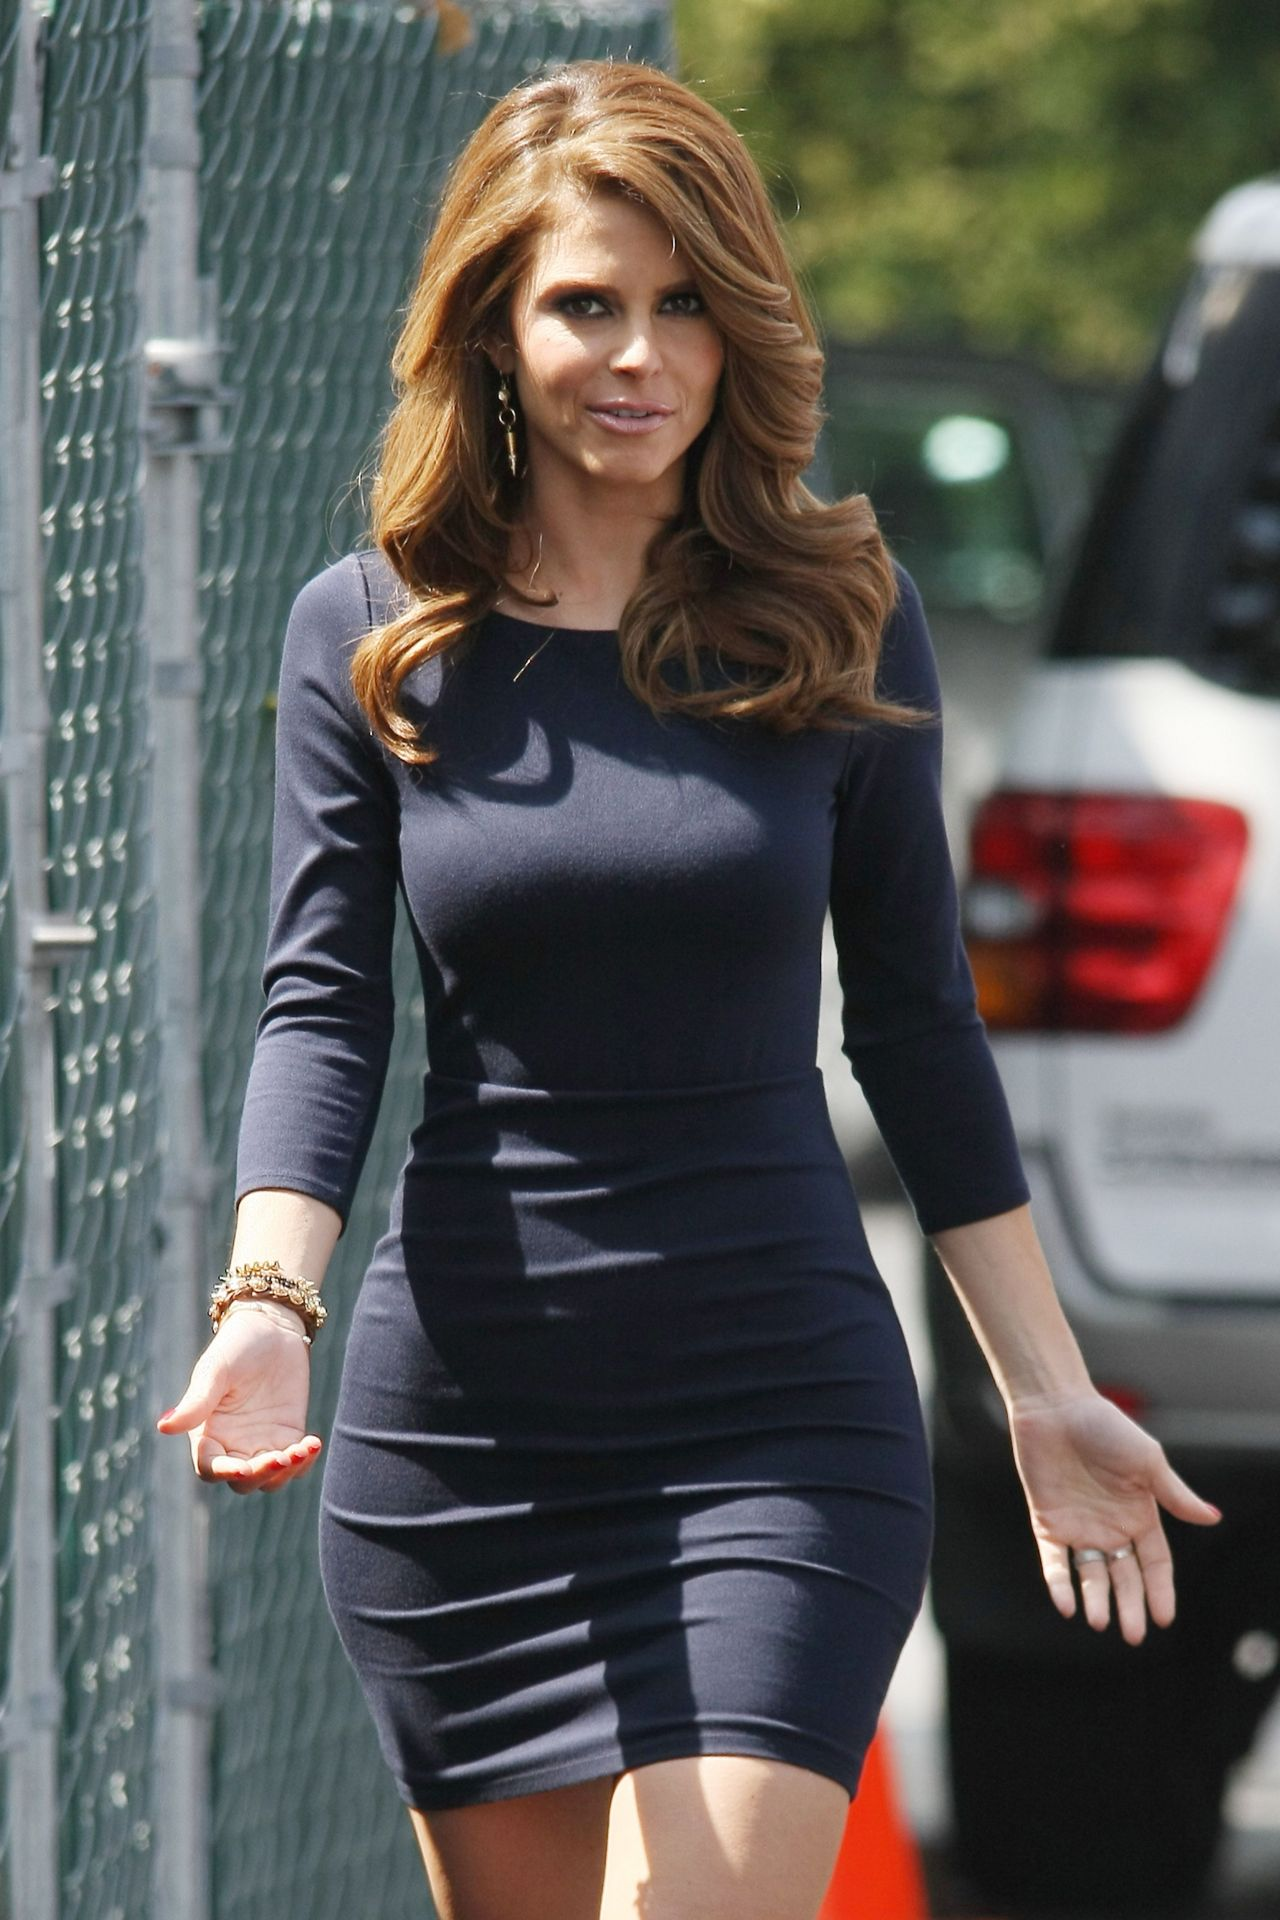 Maria Menounos In Mini Skirt On The Set Of Extra In Los